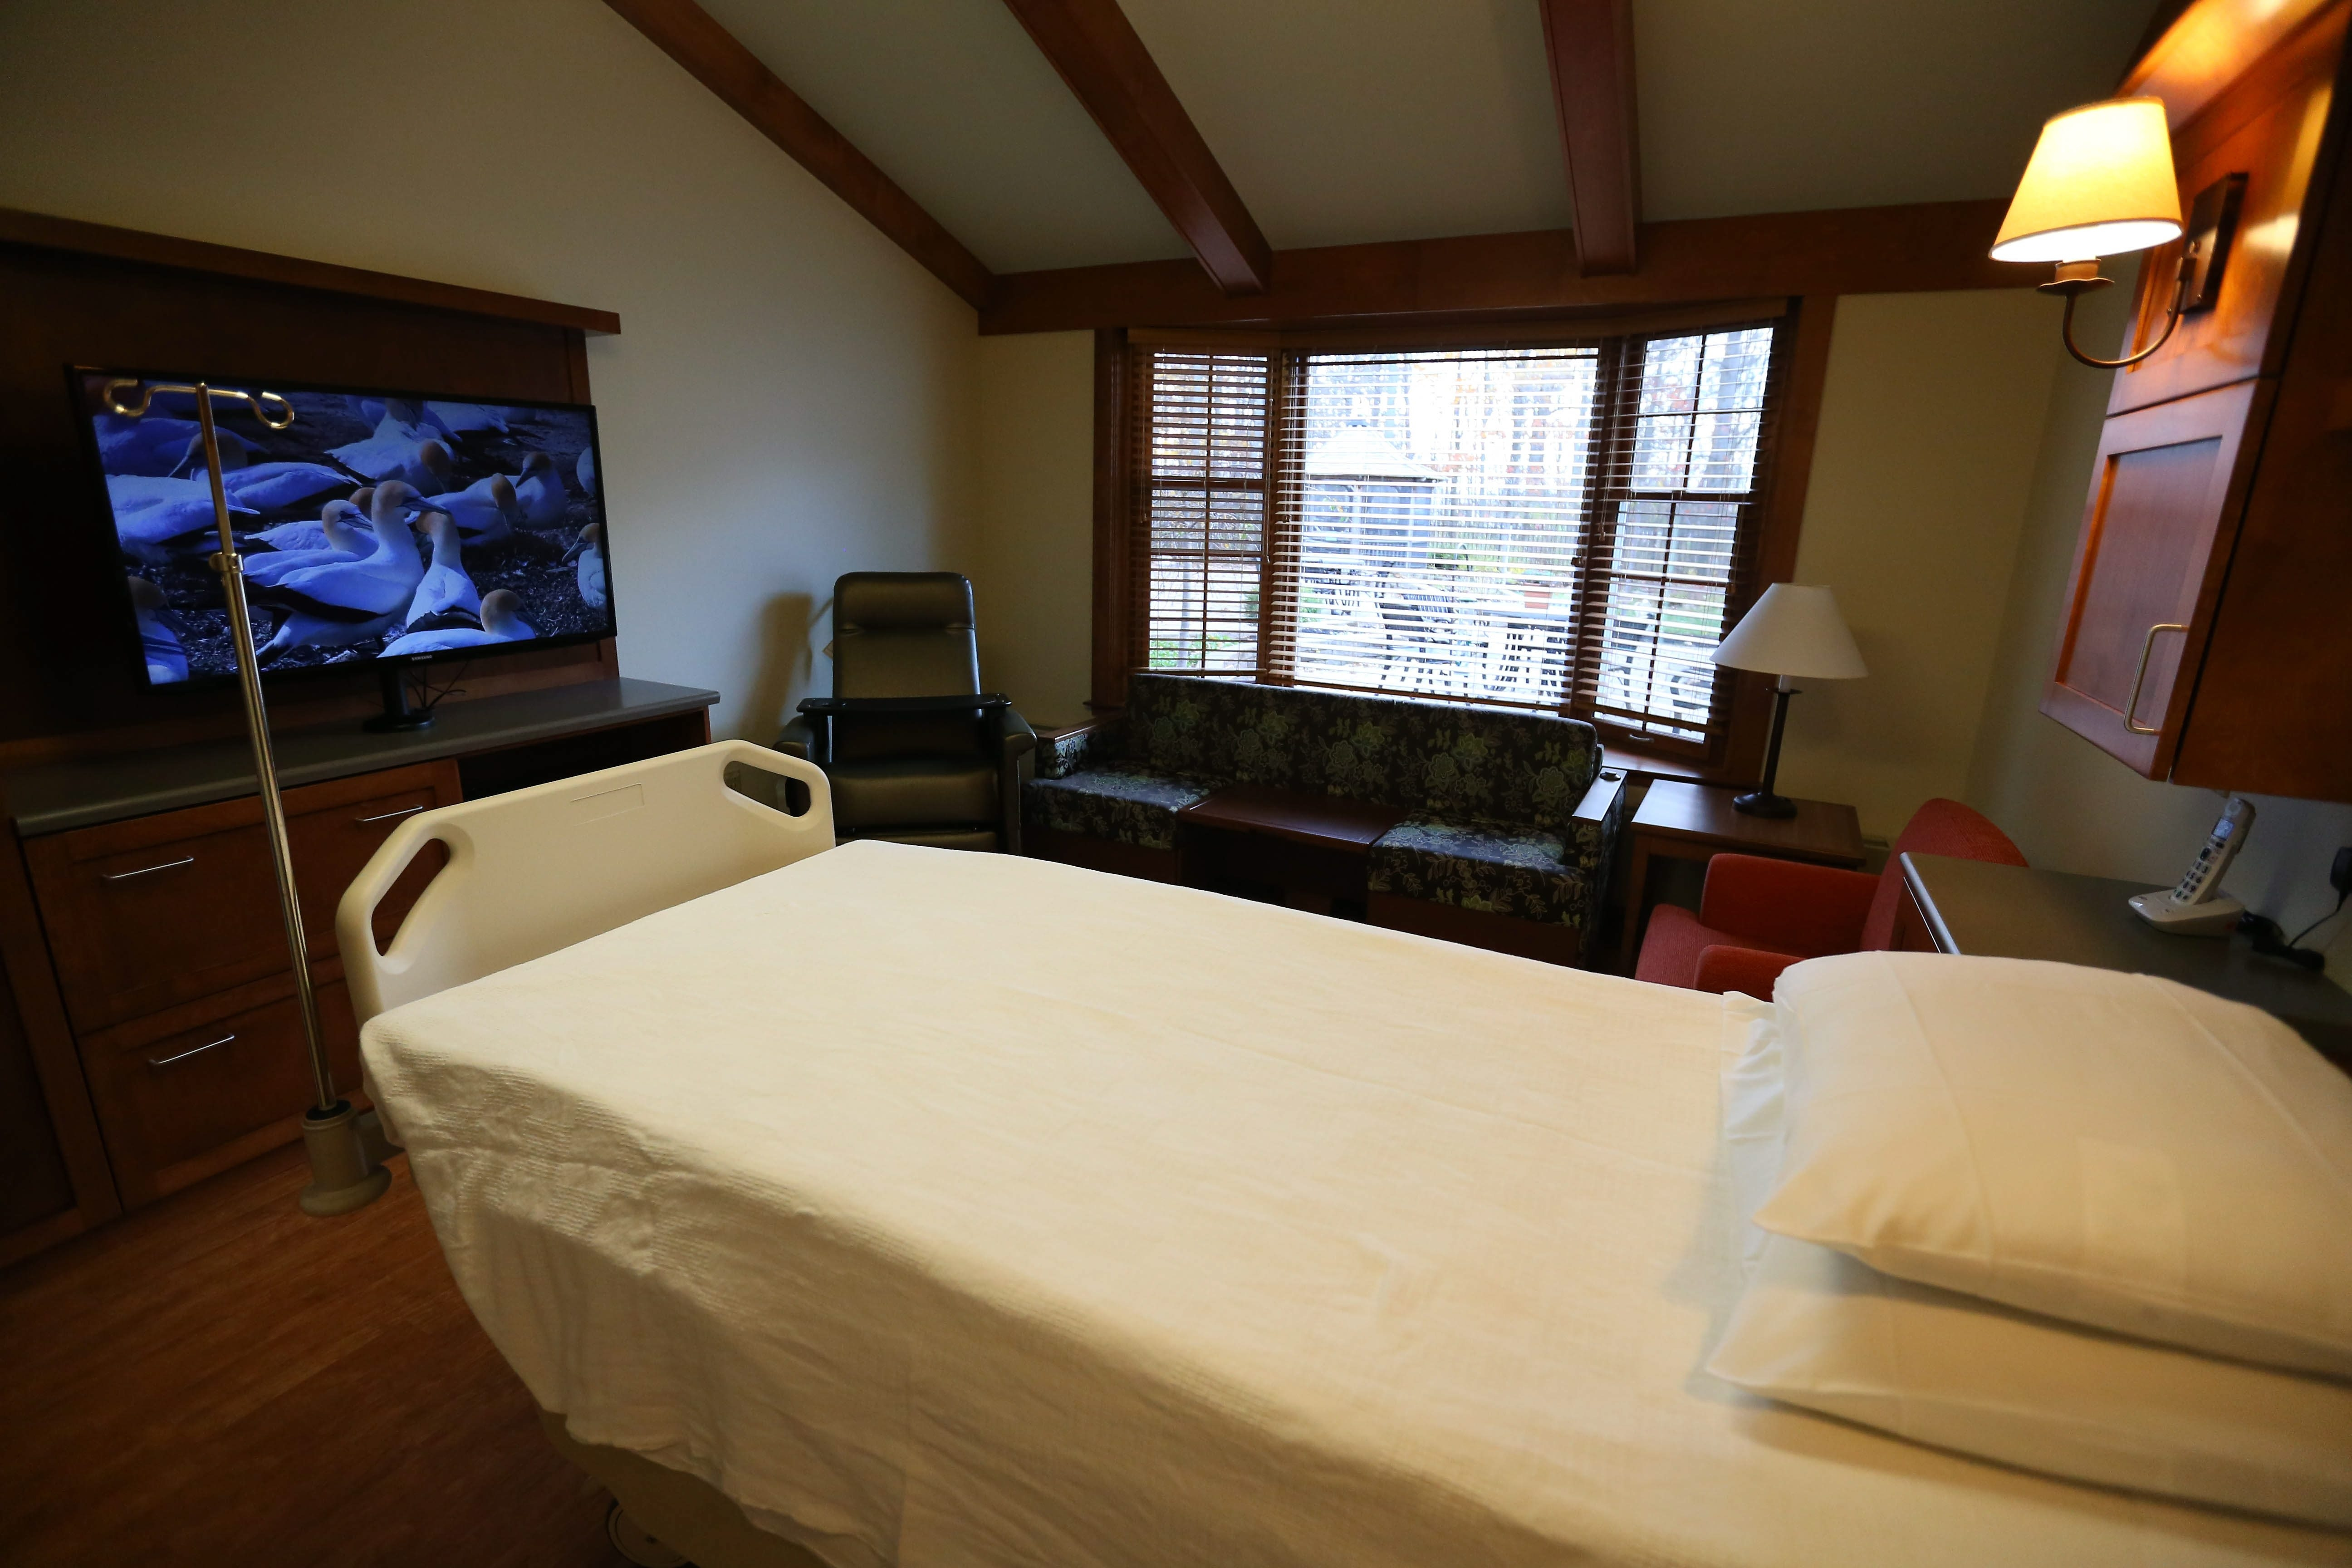 A newly renovated patient room in the William M. & Phyllis Bender Care Center on the Hospice Mitchell Campus in Cheektowaga Wednesday.